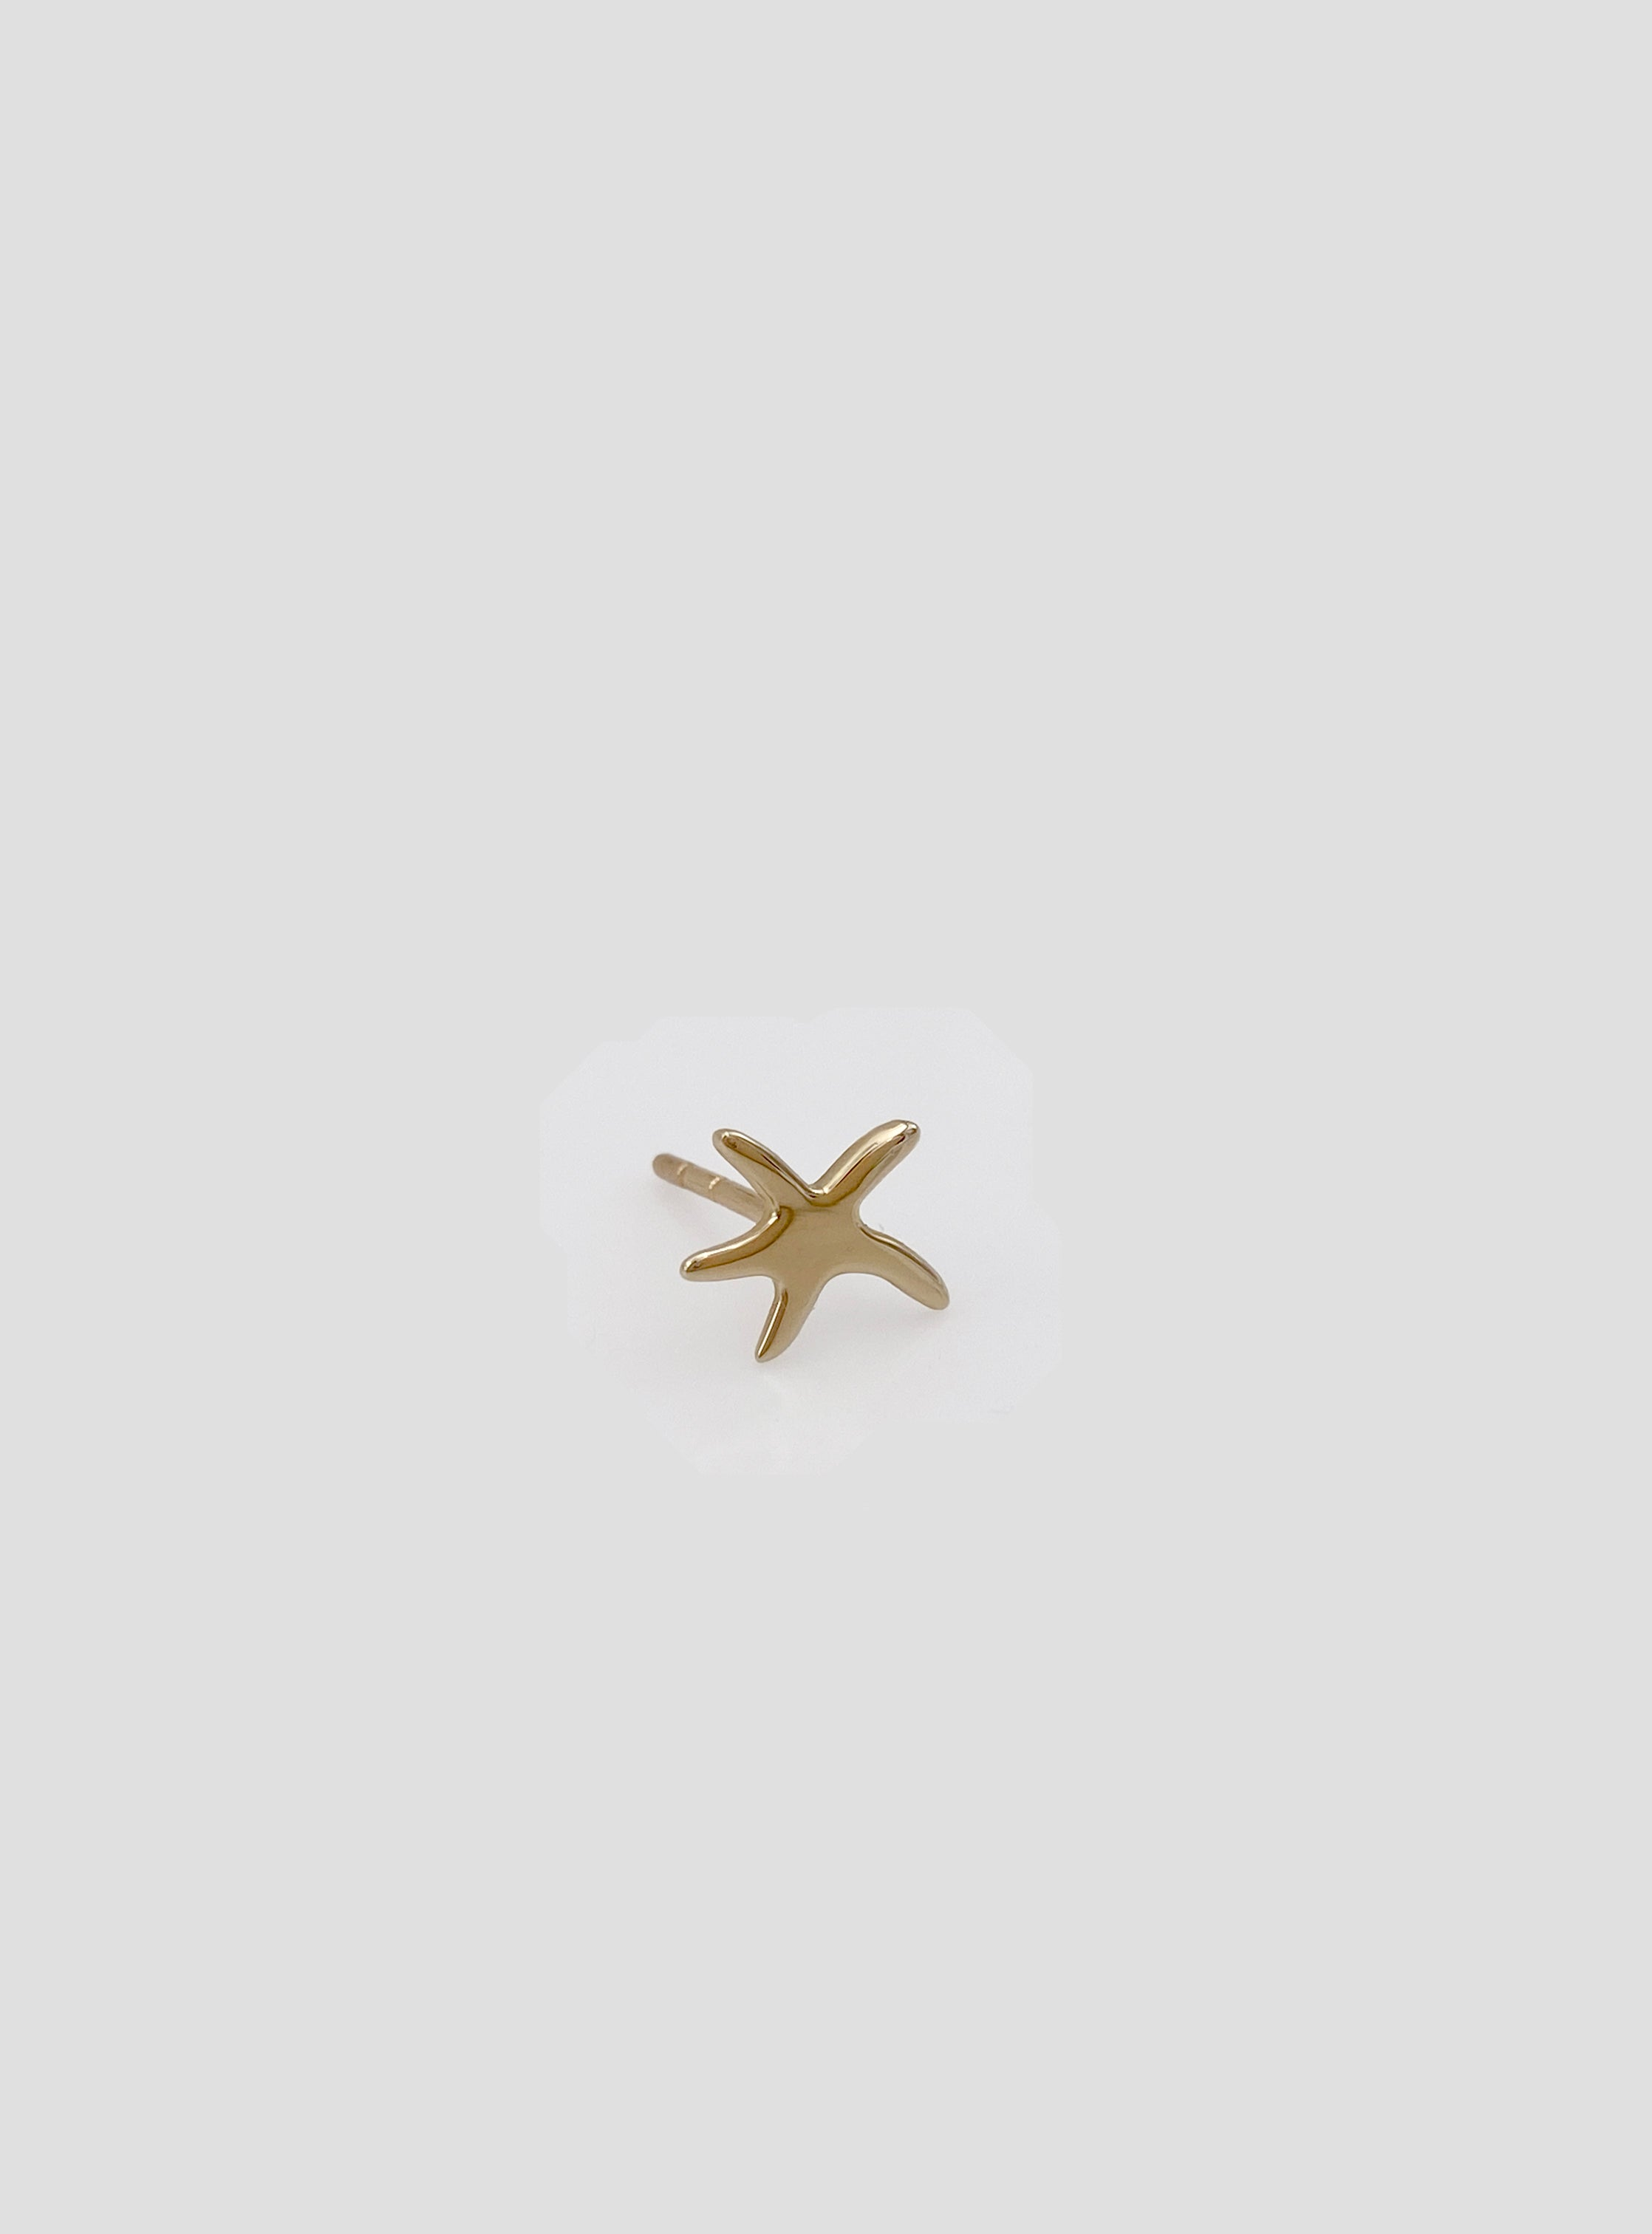 2D Sea Star Stud, single earring